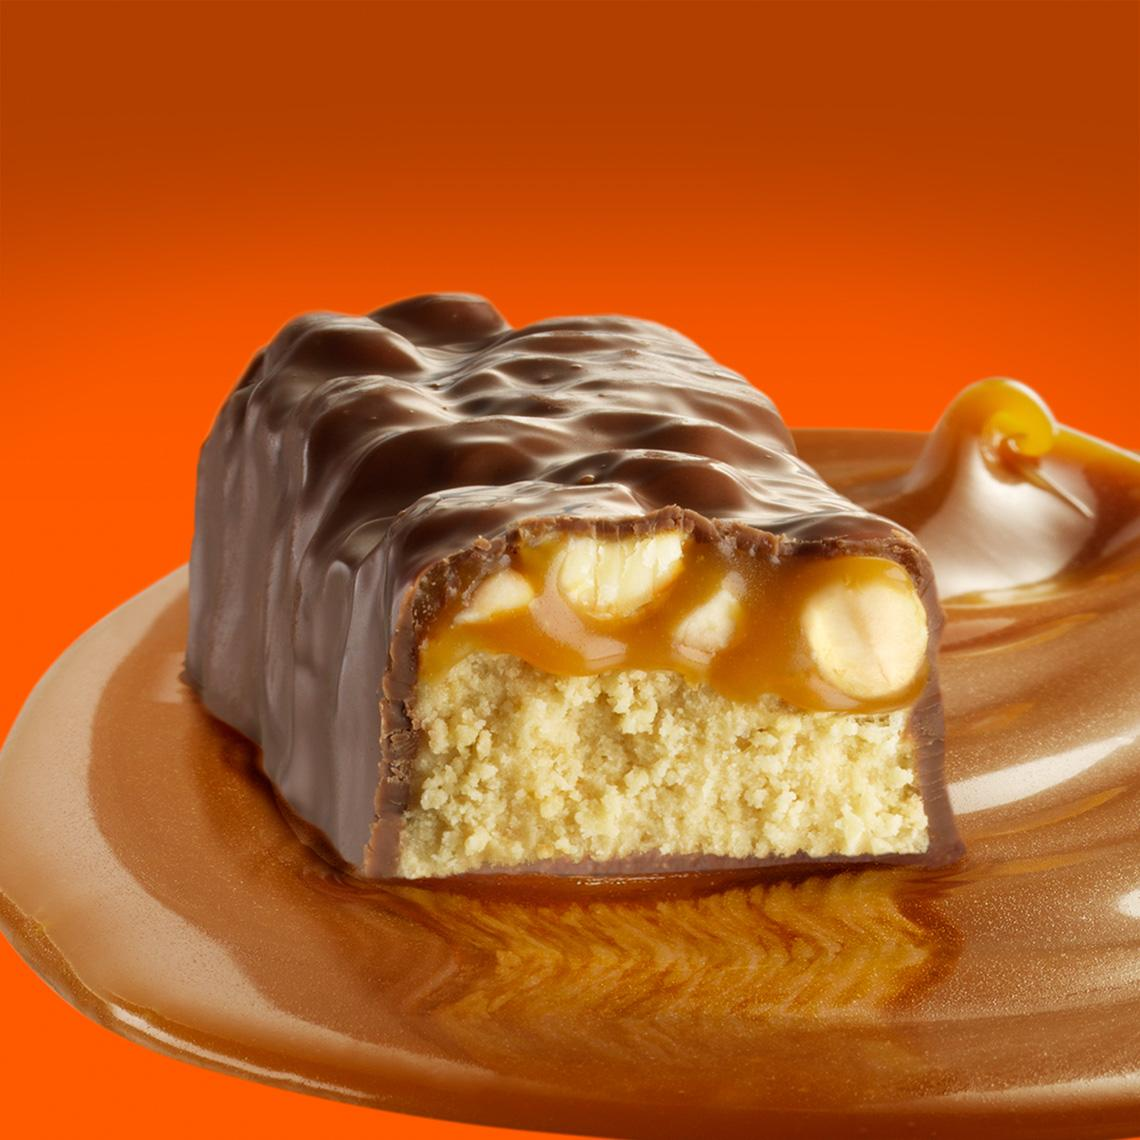 Detour Lower Sugar Caramel Peanut bar